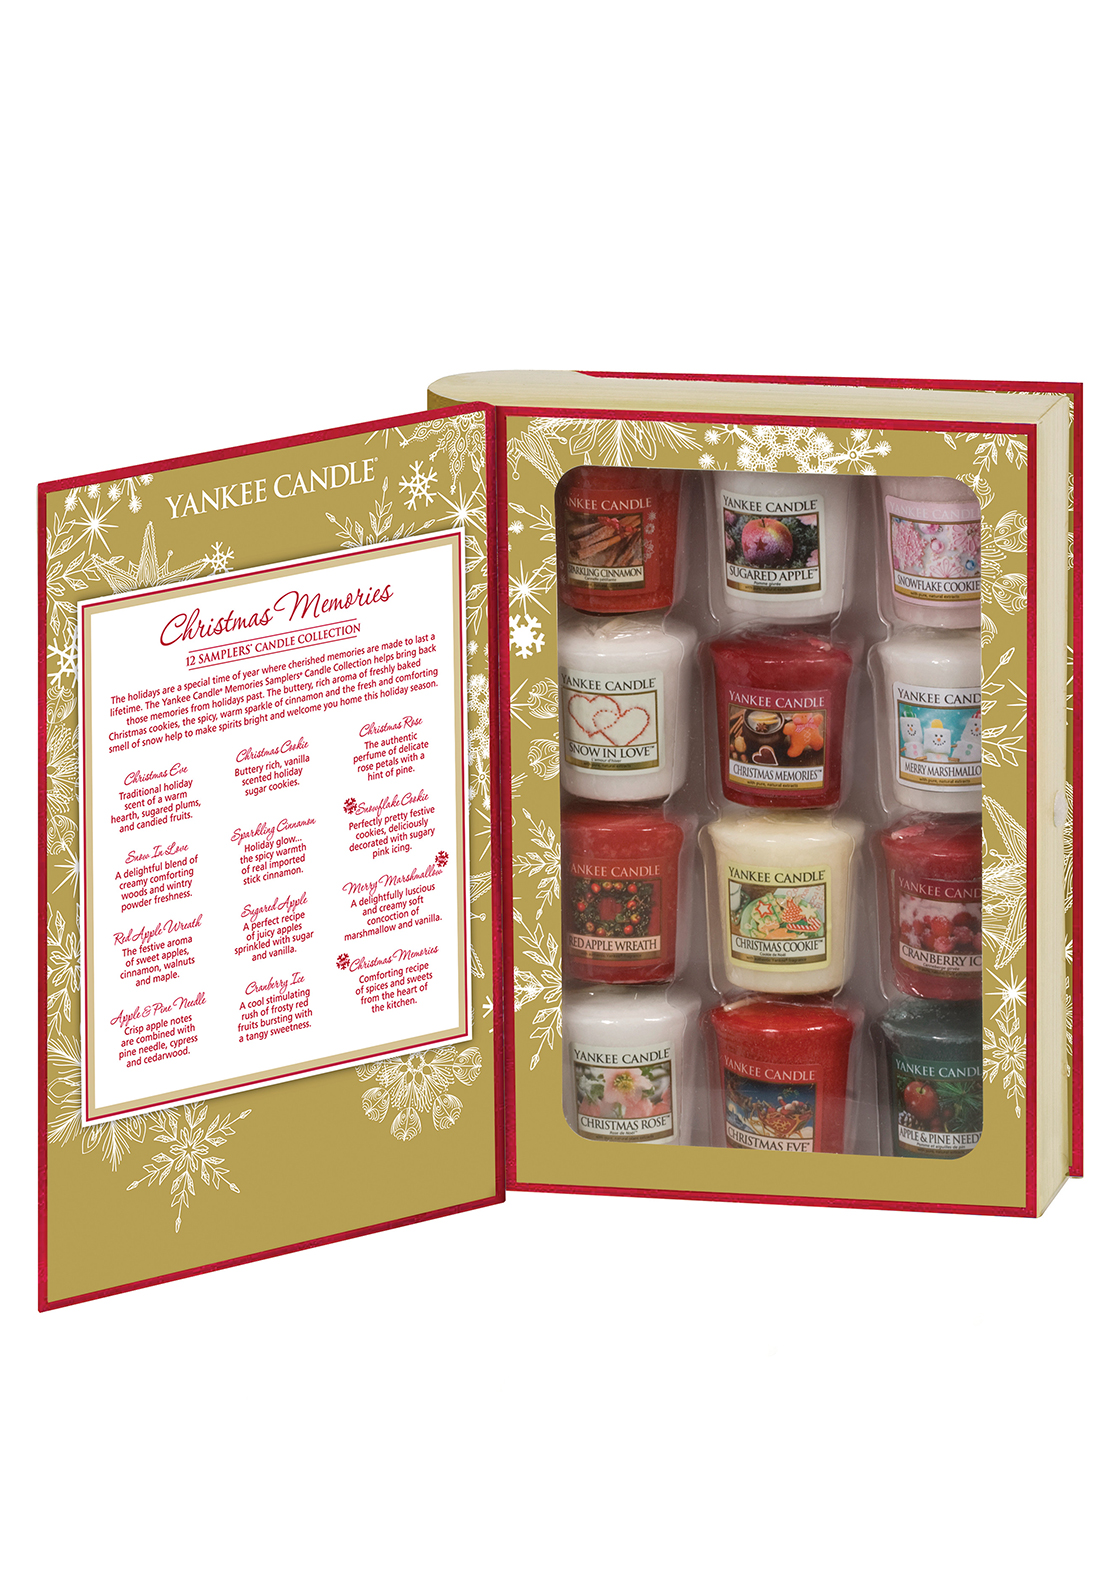 Yankee Candle Christmas Memories, 12 Votive Gift Book